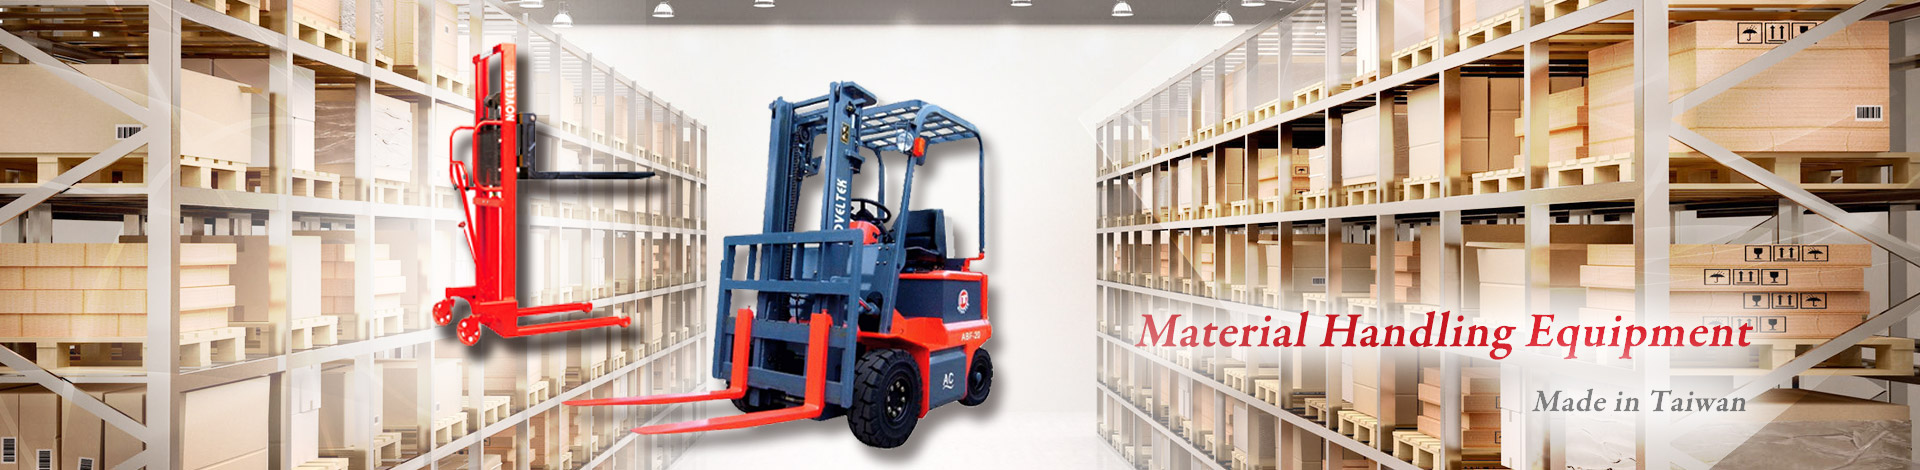 Noveltek Industrial Manufacturing Inc. is a leading manufacturer specialized in Electric Forklift, Powered Pallet Truck, Order Picker Truck.